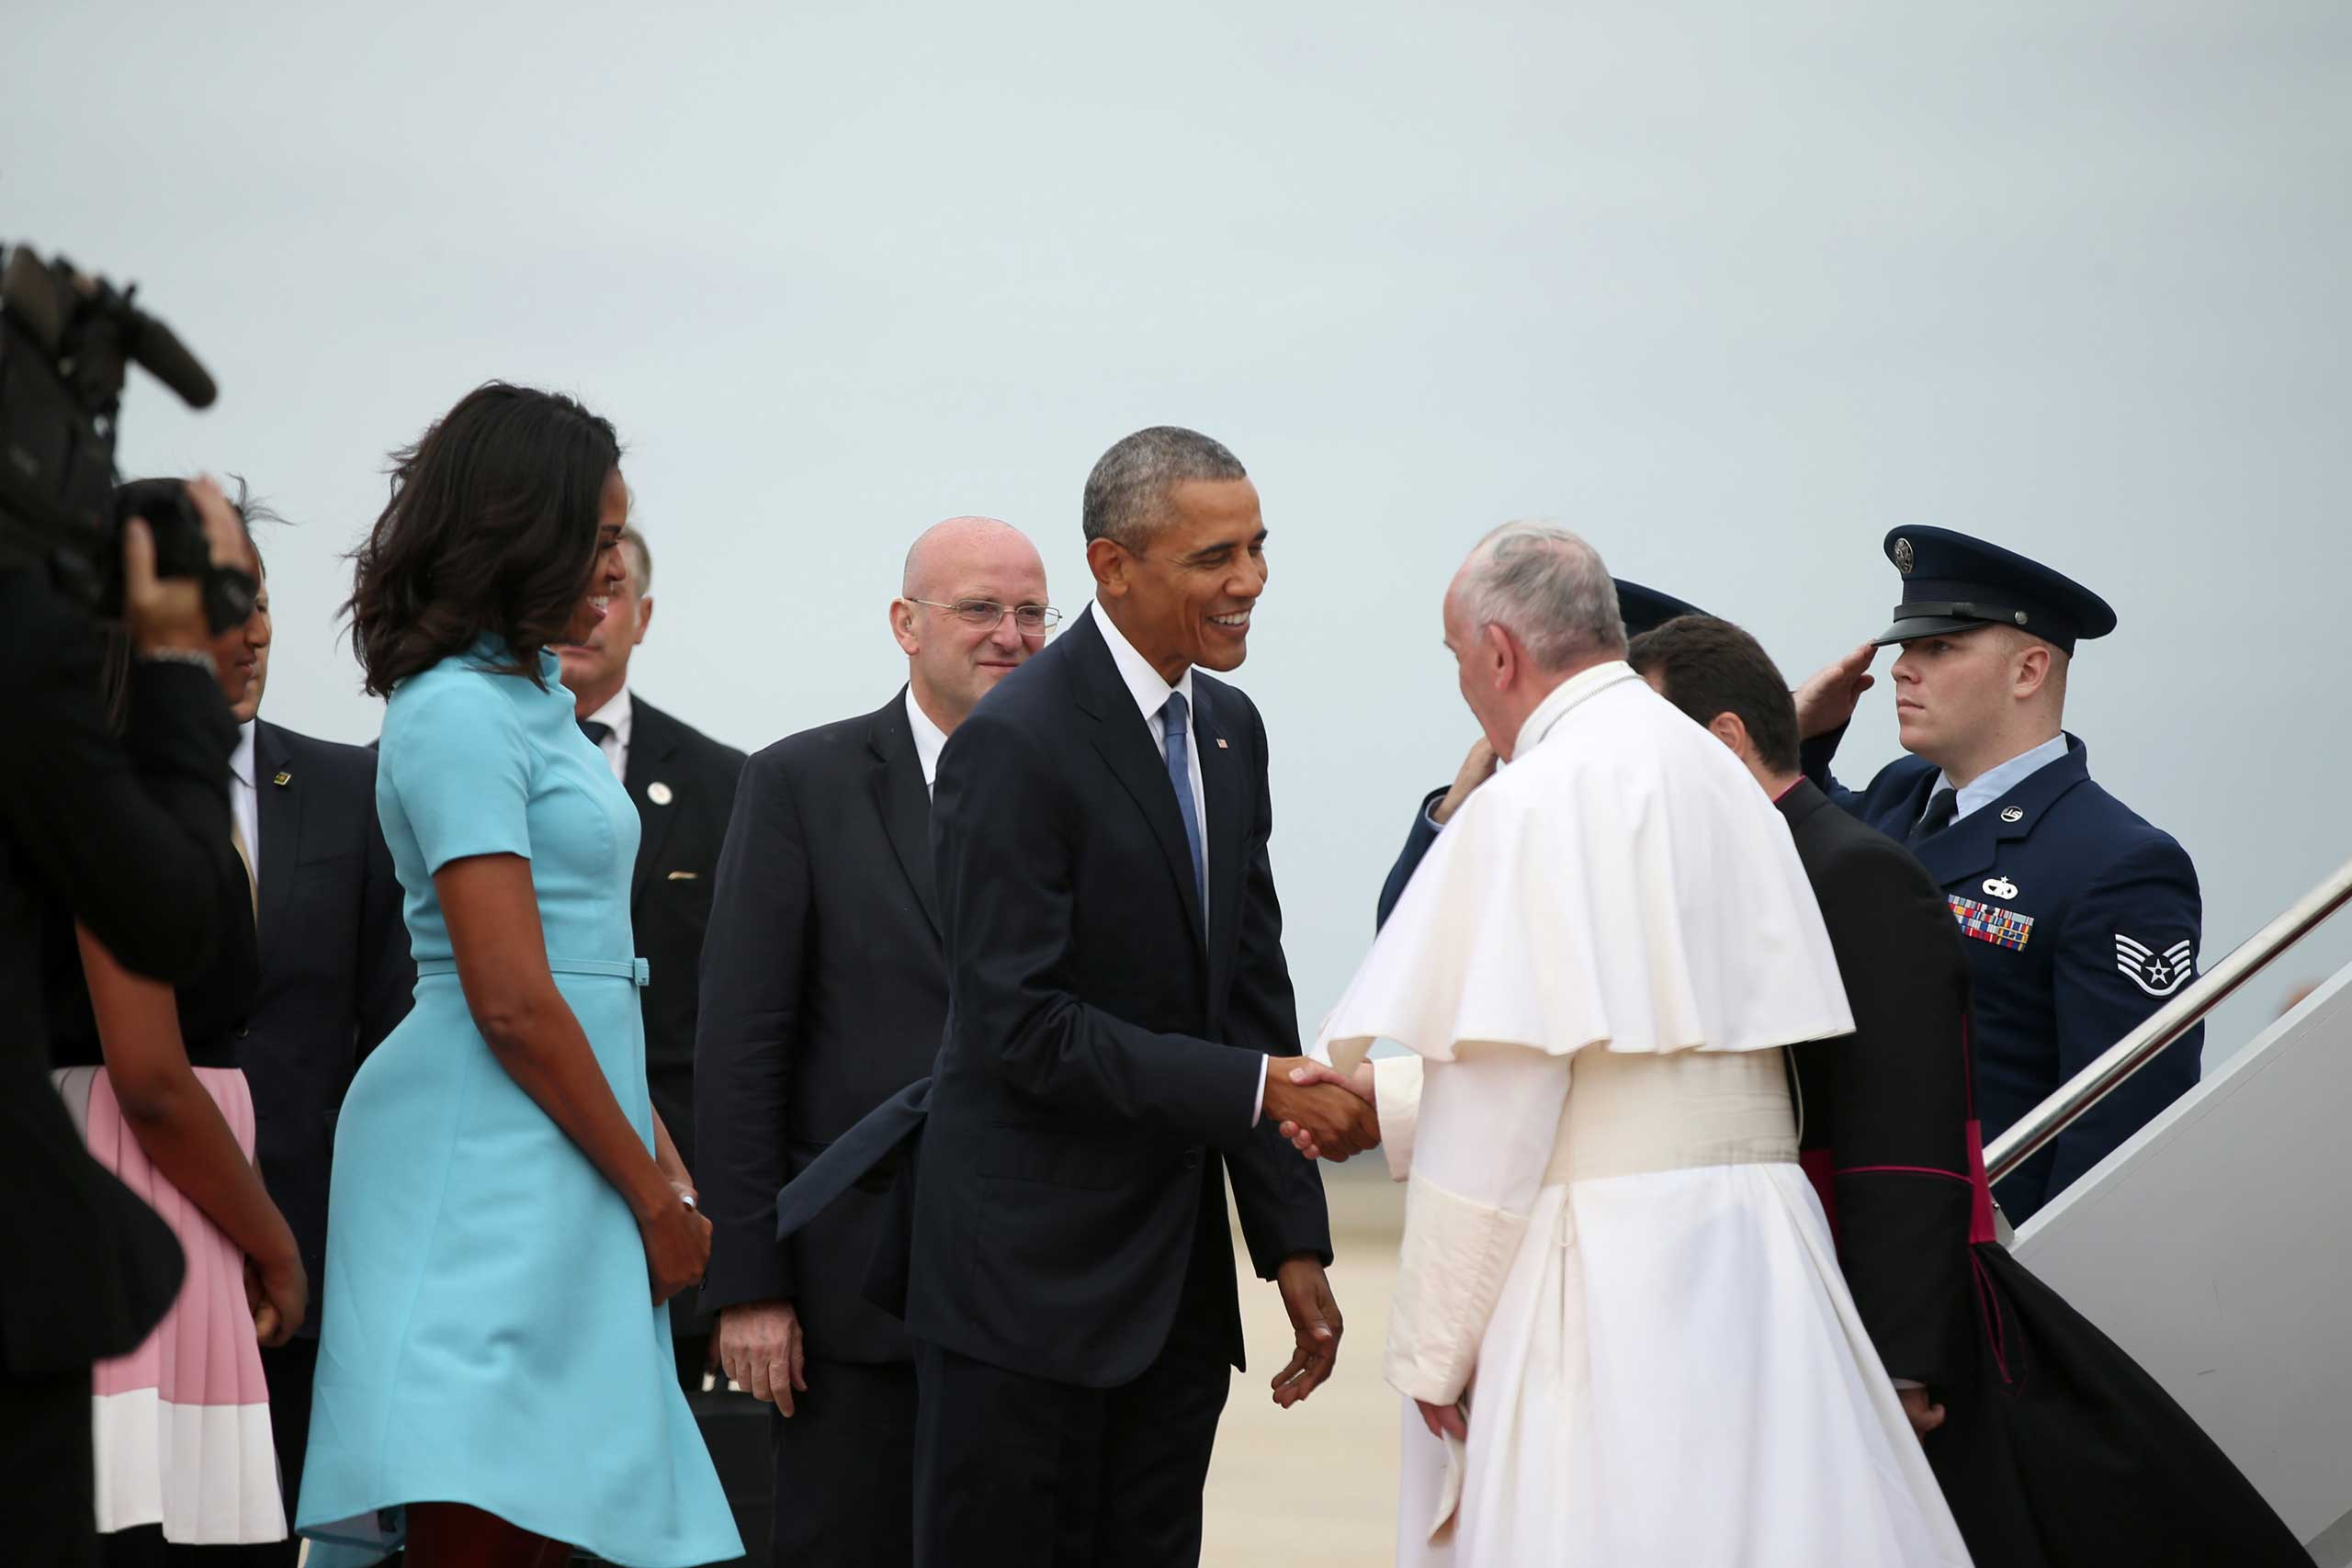 President Barack Obama, first lady Michelle Obama, and others, greet Pope Francis upon his arrival at Andrews Air Force Base, Md., on Sept. 22, 2015.